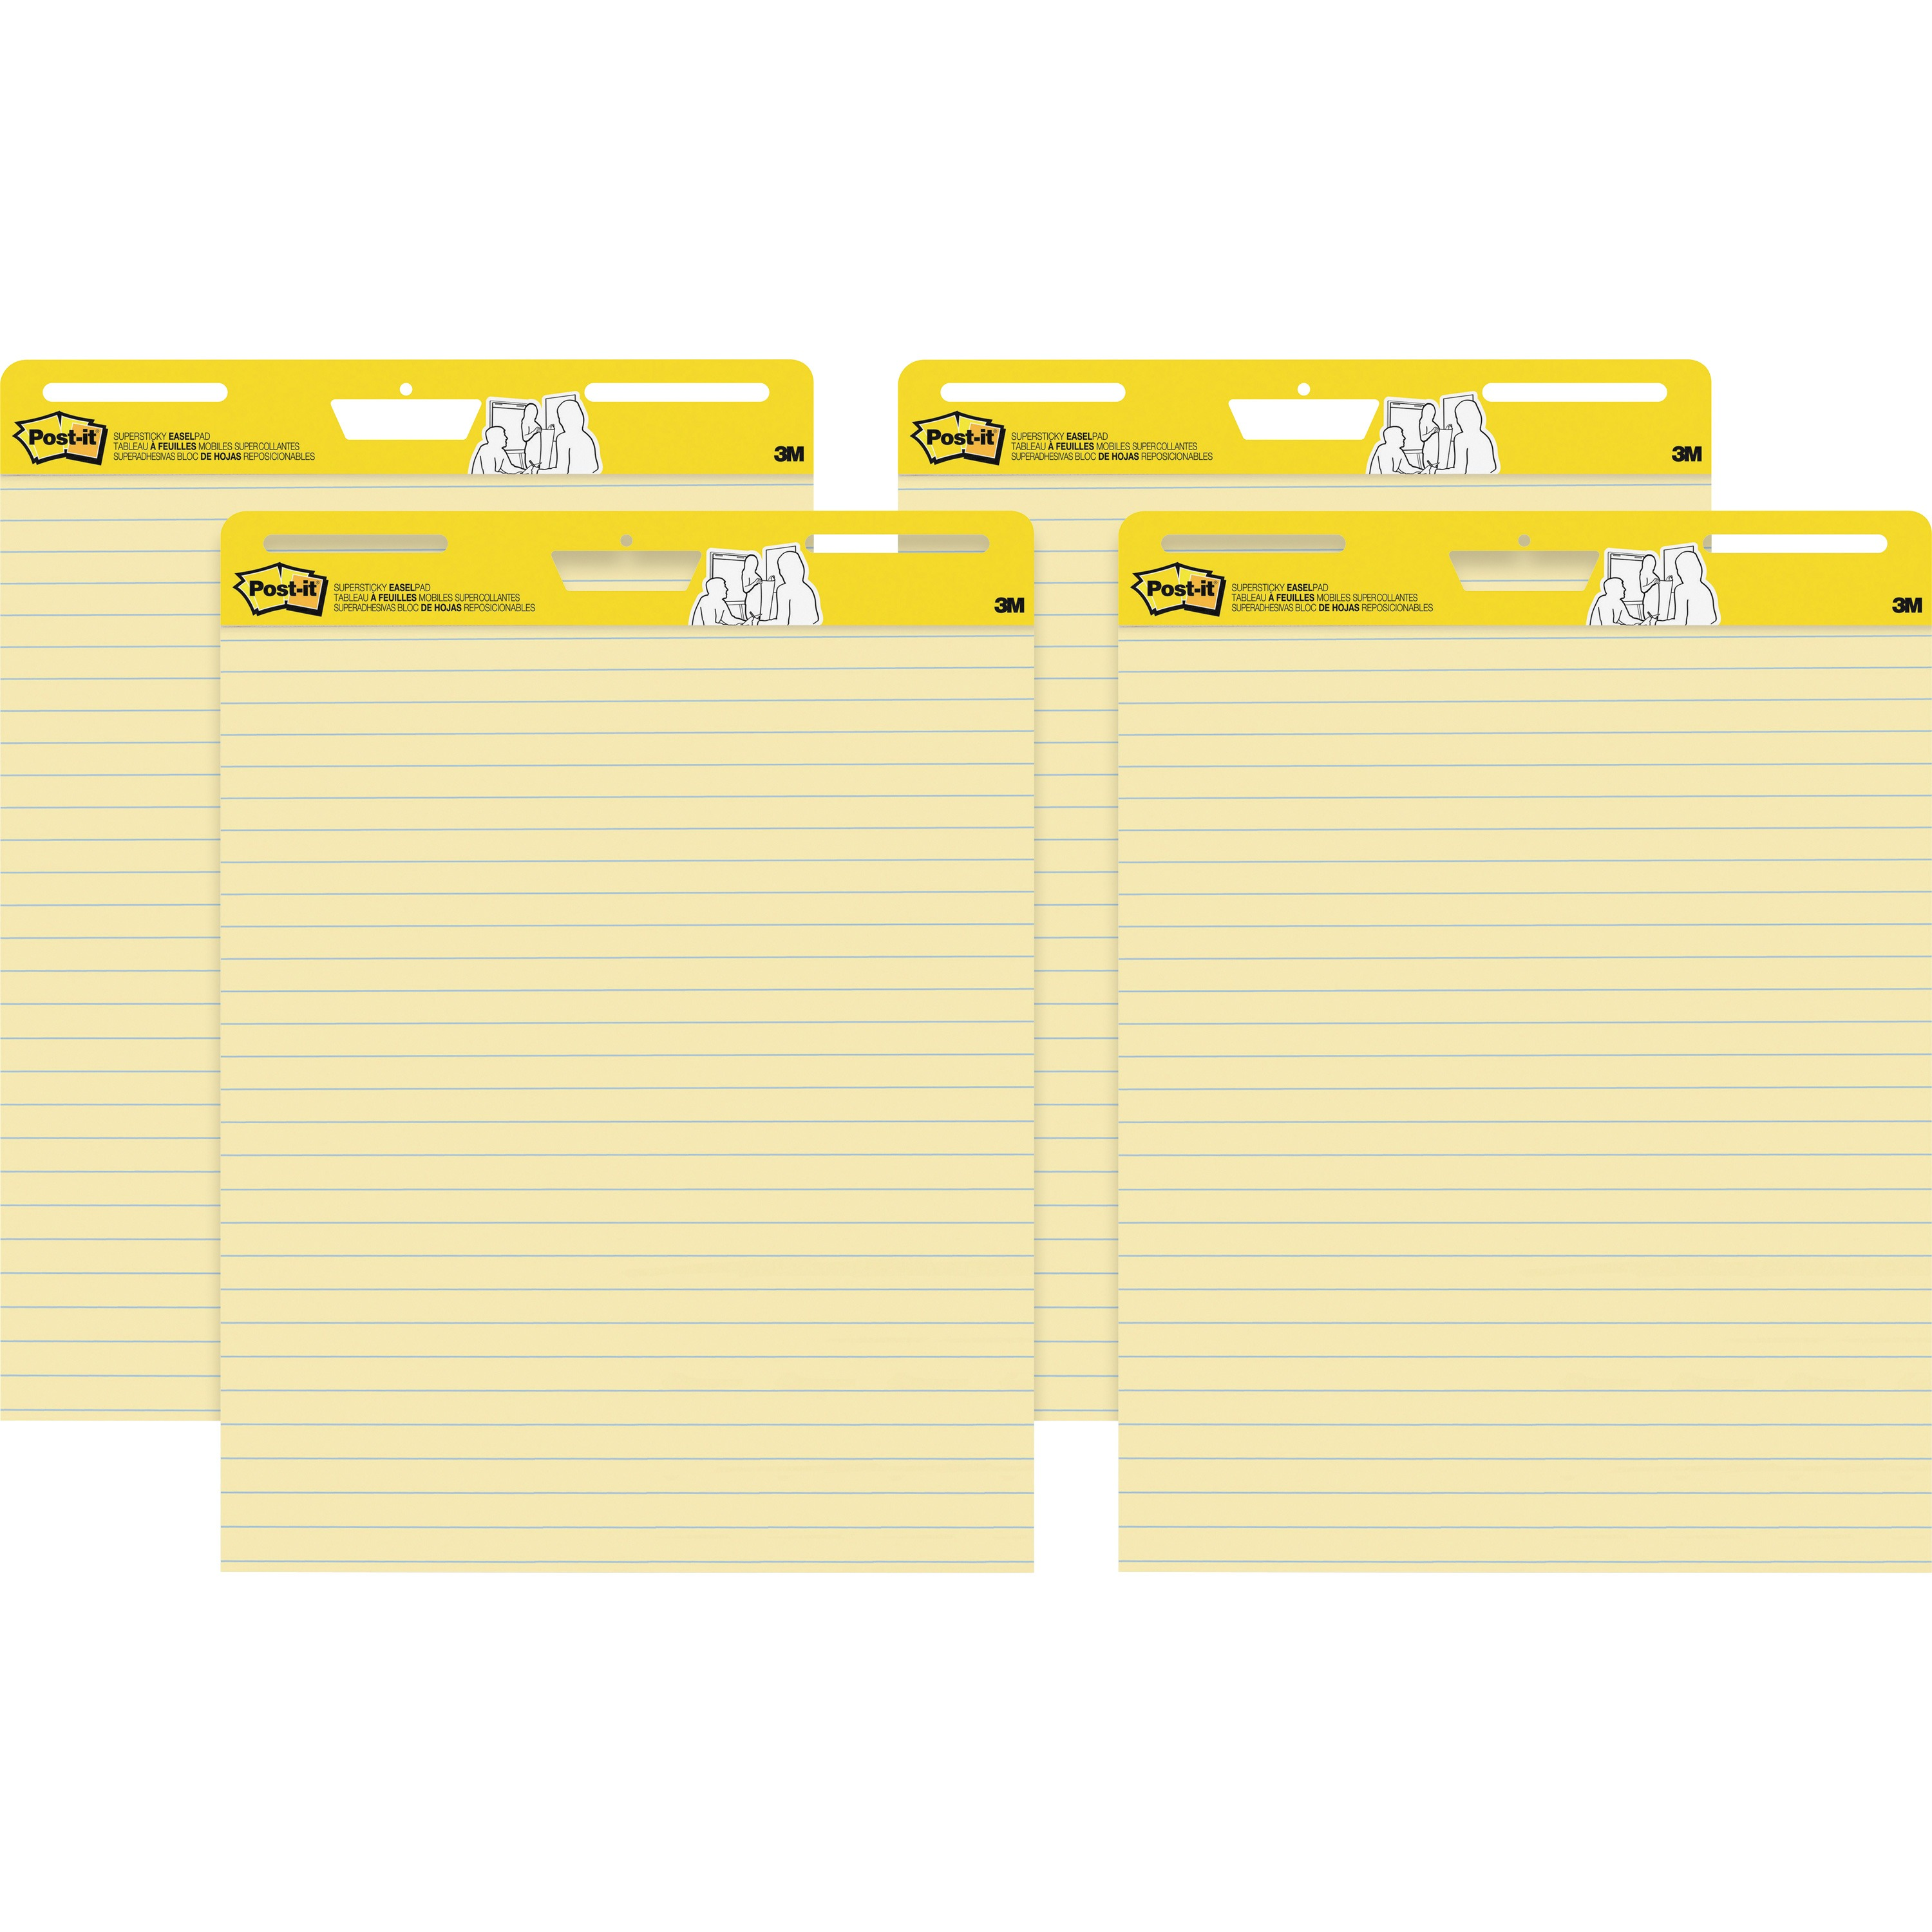 "Post-it Self-Stick Easel Pads, 25"" x 30"", Yellow Ruled, 30-Sheets/Pad, 4-Pads/Pk"